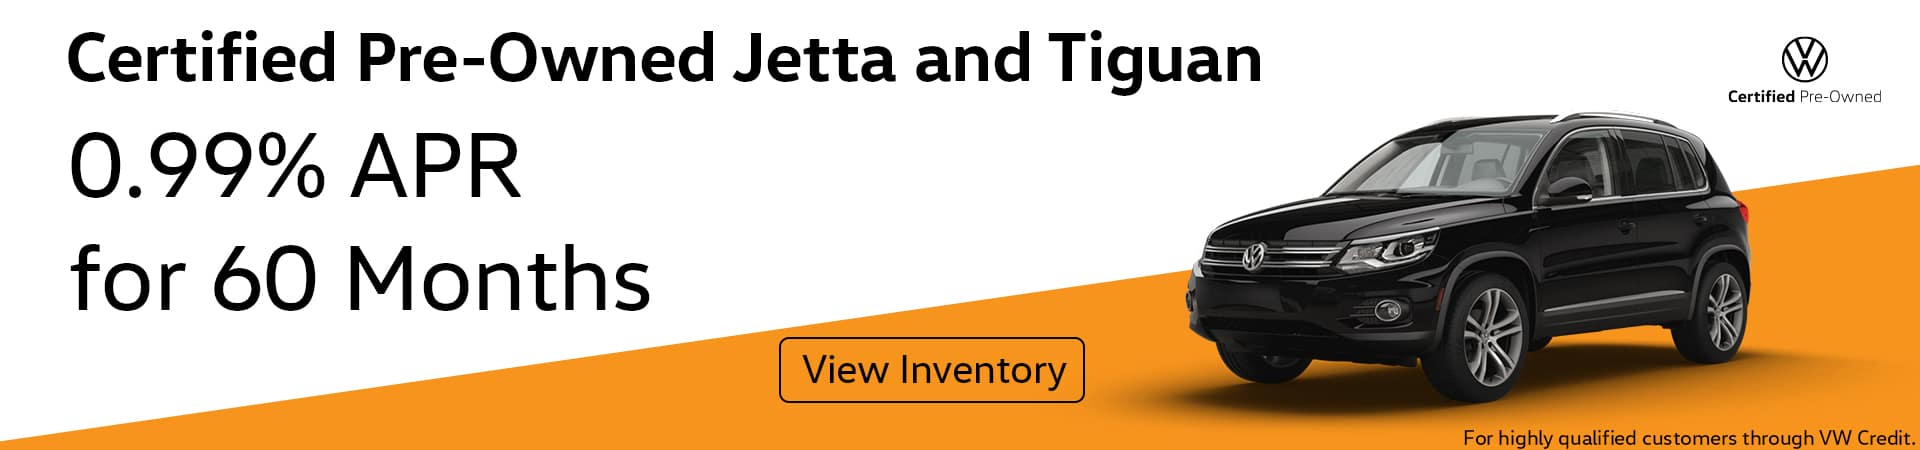 0.99% APR for 60 months on CPO Jetta and Tiguan